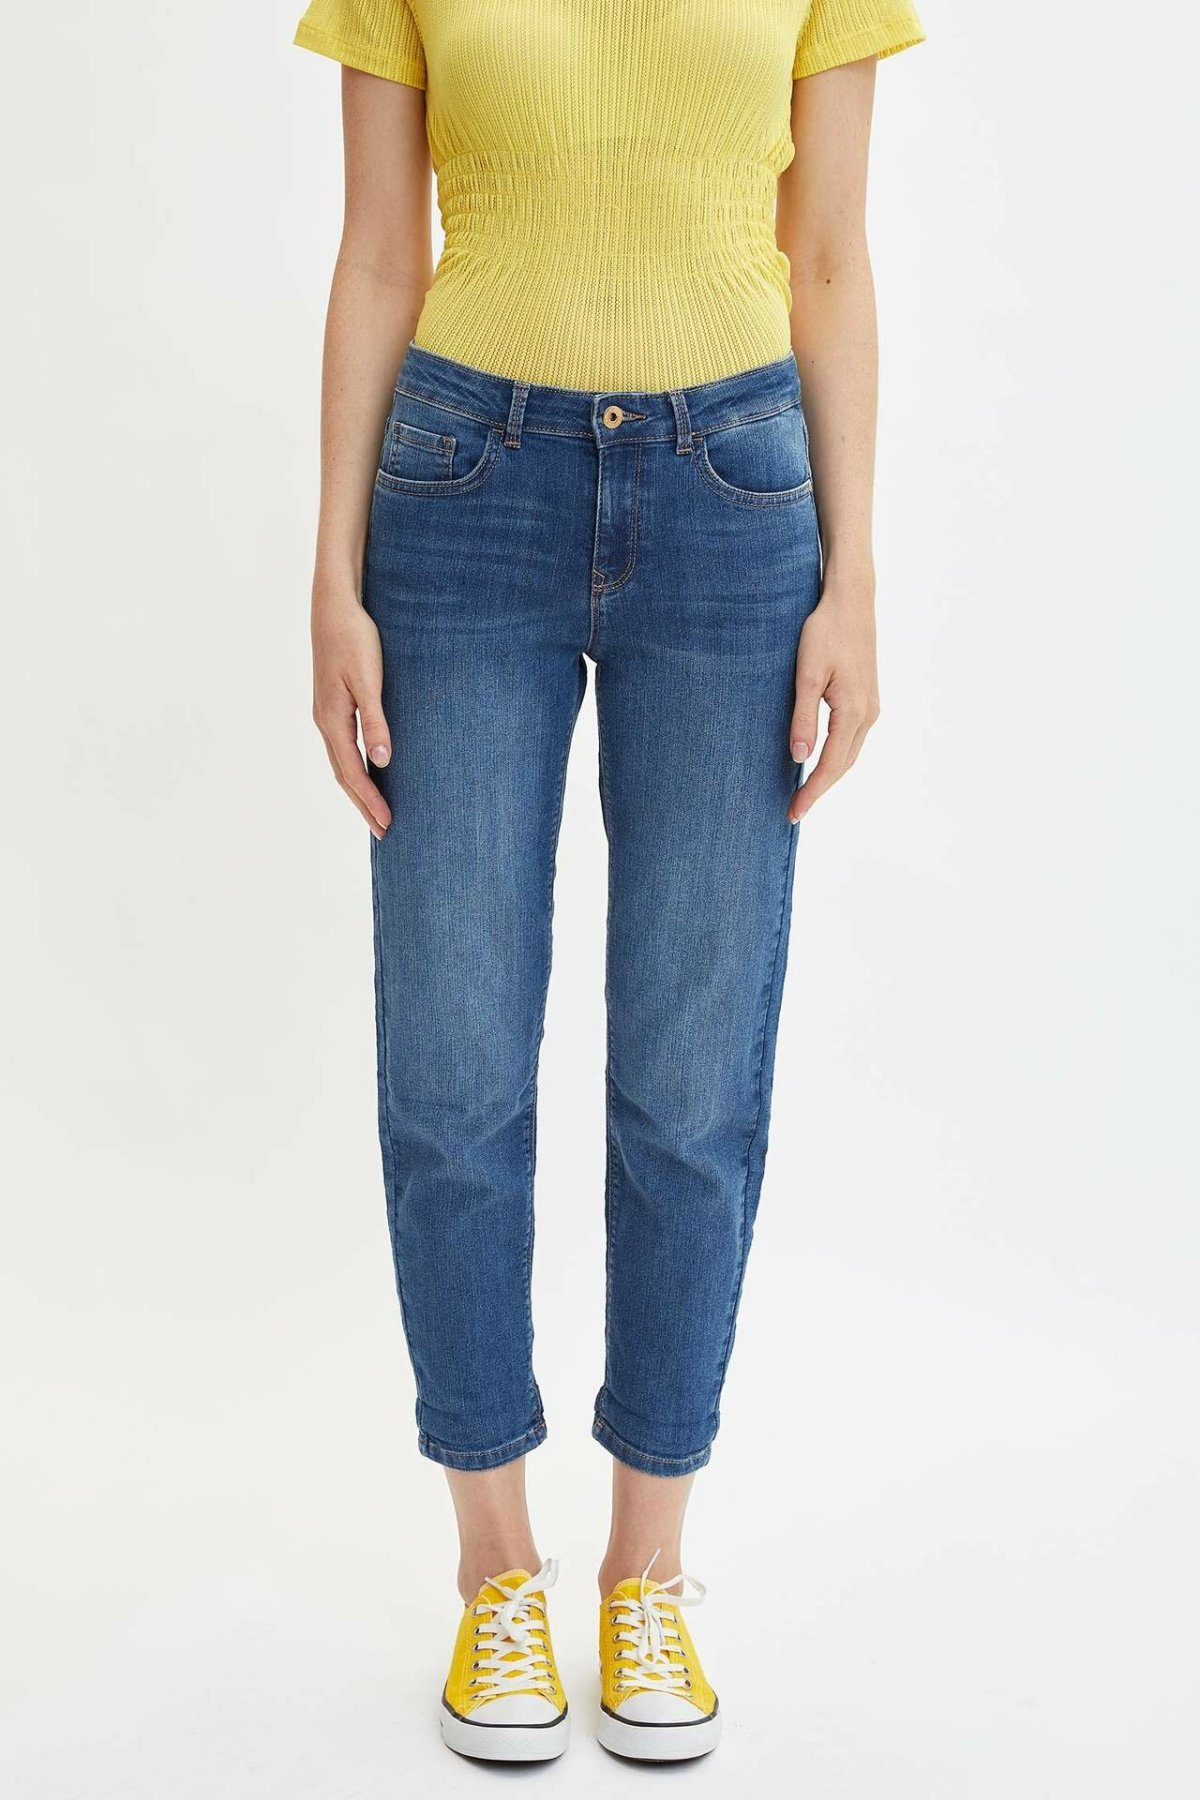 DeFacto Blue Lady Mid-waist Loose Denim Jeans Simple Joker Nine Minutes Trousers Casual Pencil Pants  -J0835AZ19AU